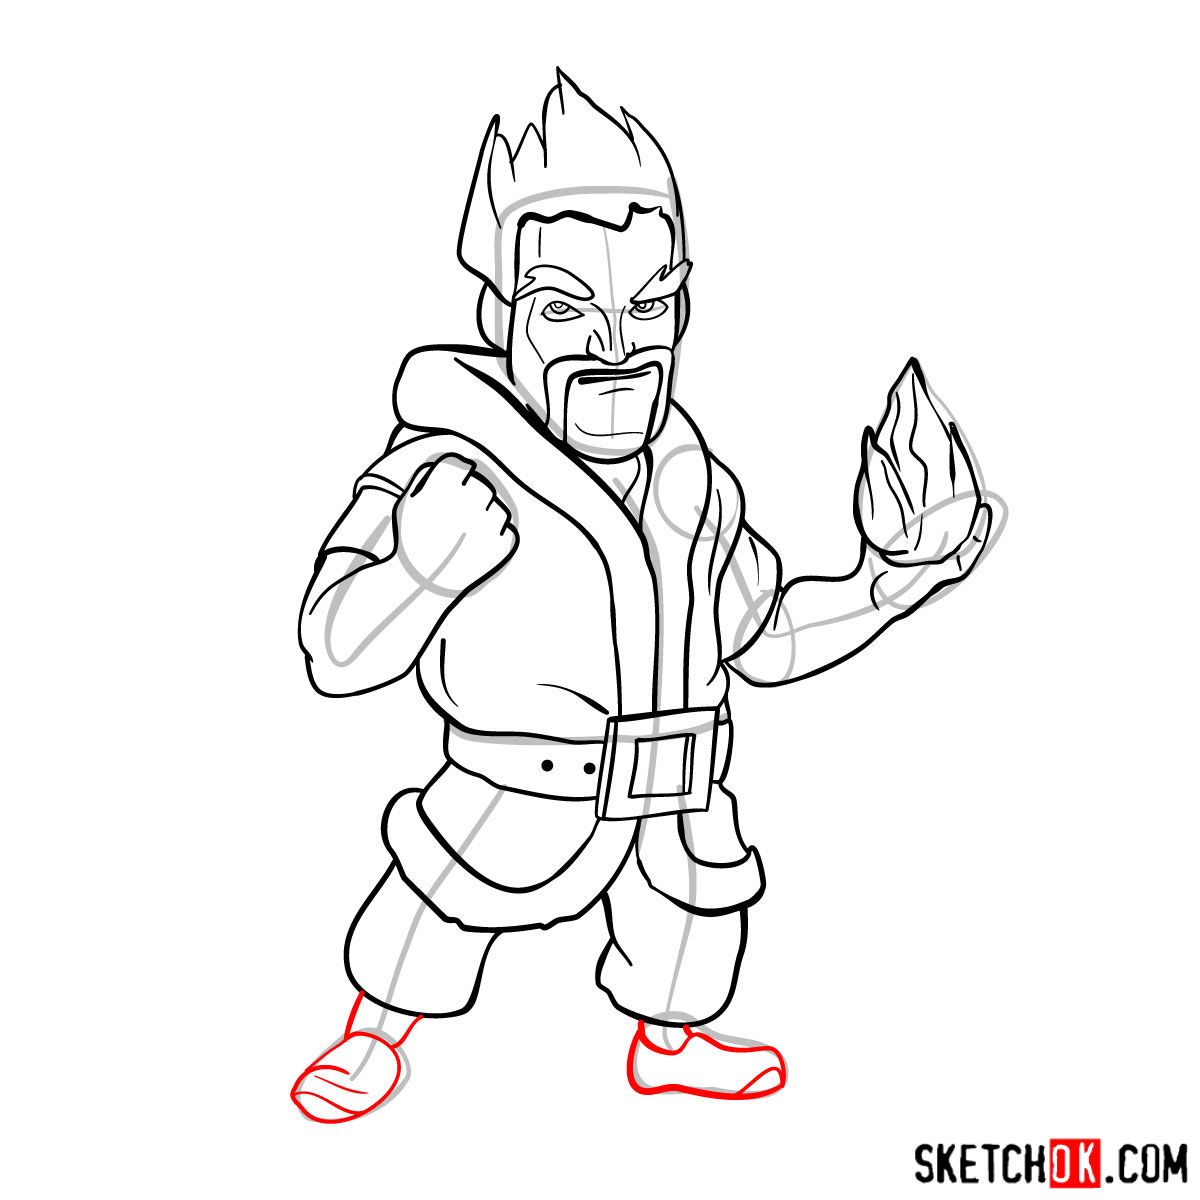 How to draw Ice Wizard from Clash of Clans - step 12